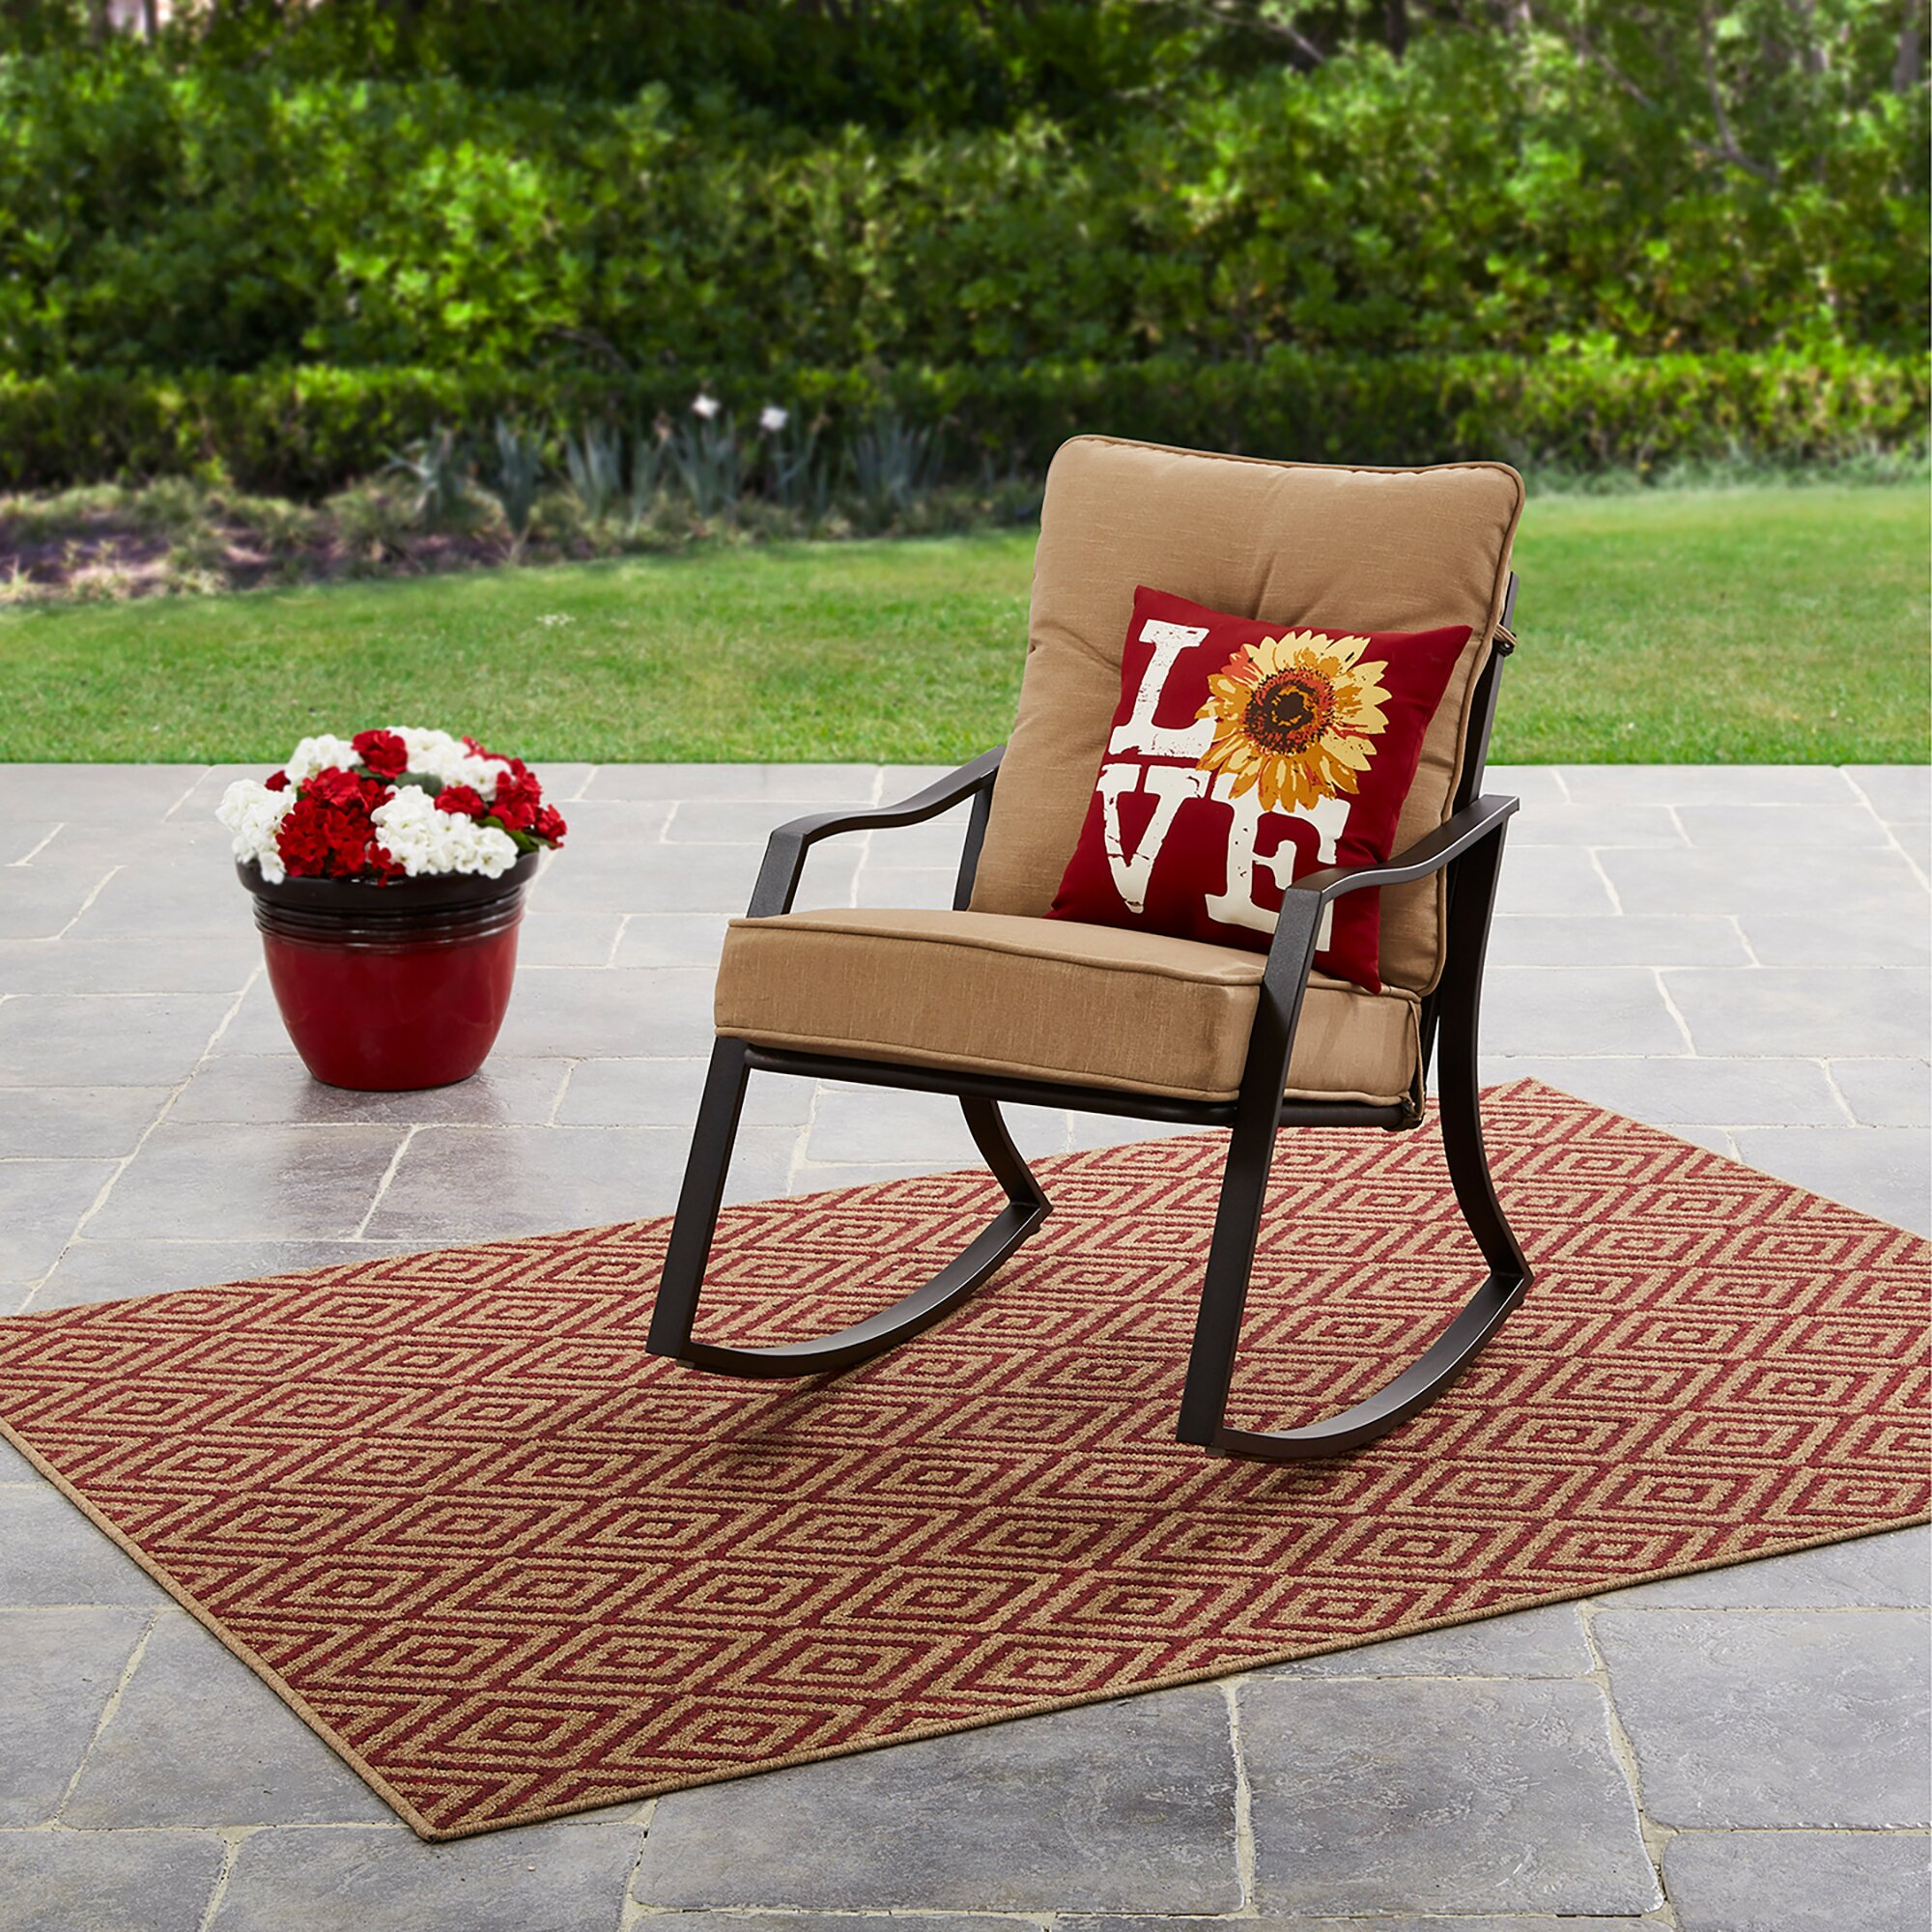 12 Summer Porch And Patio Essentials At Walmart Southern Living